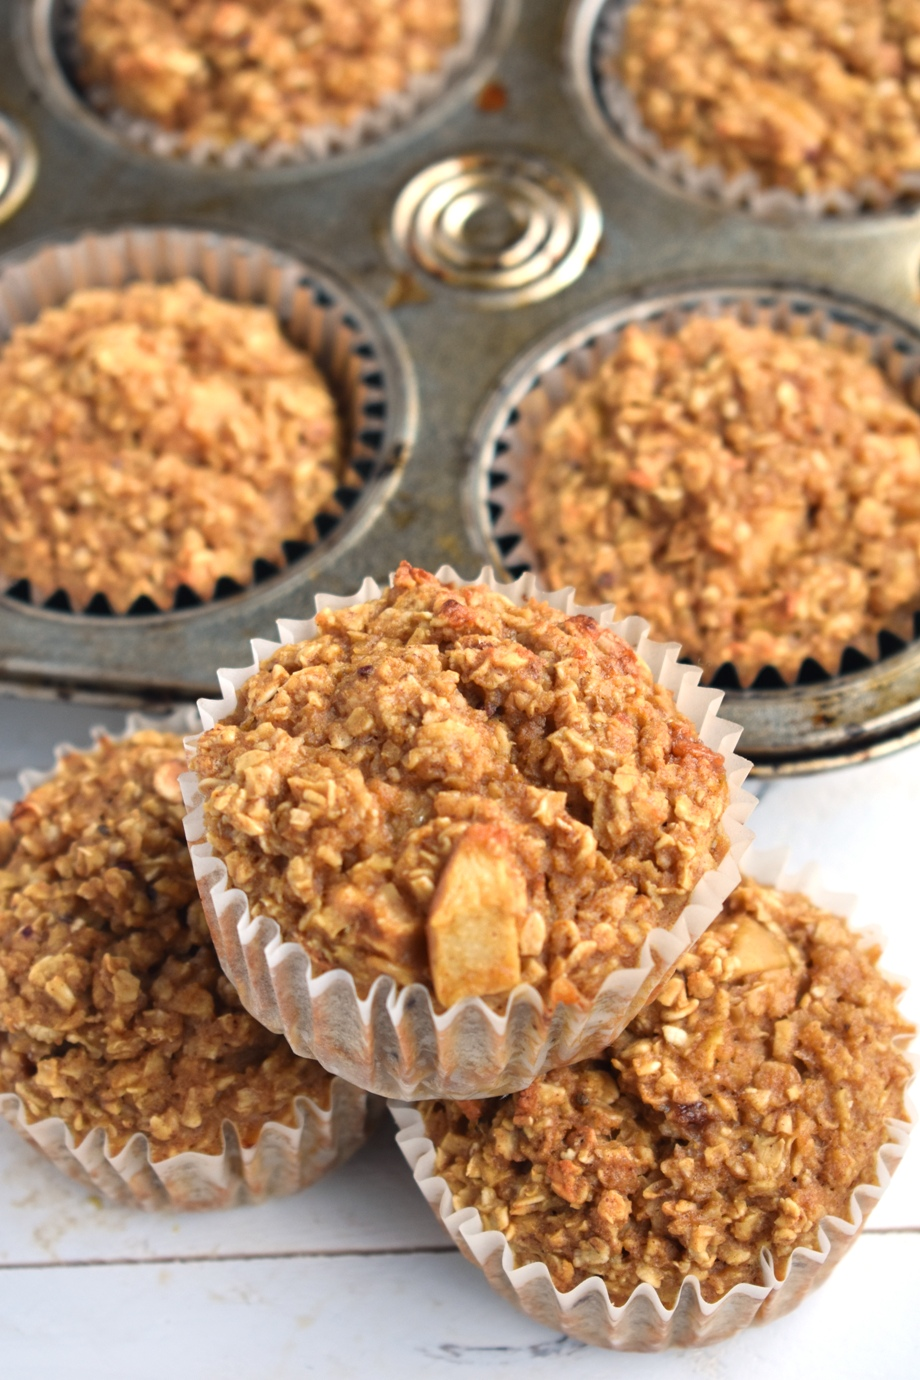 Healthy apple cinnamon baked oatmeal